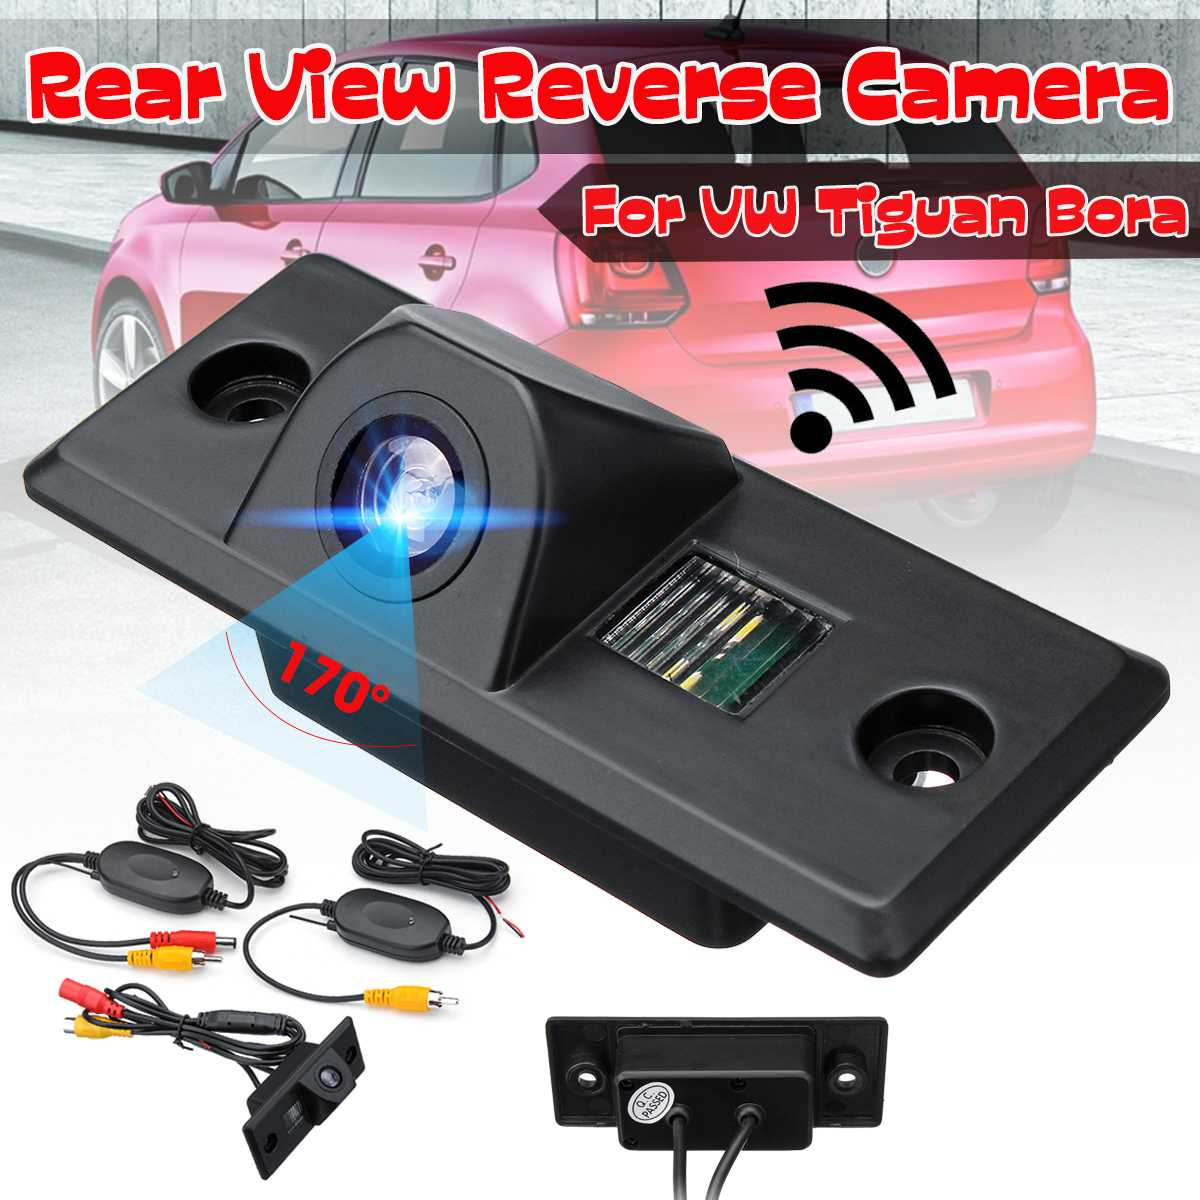 Car Wireless Rear View Reverse Parking Backup Camera For VW For Tiguan Bora For Porsche For Cayenne